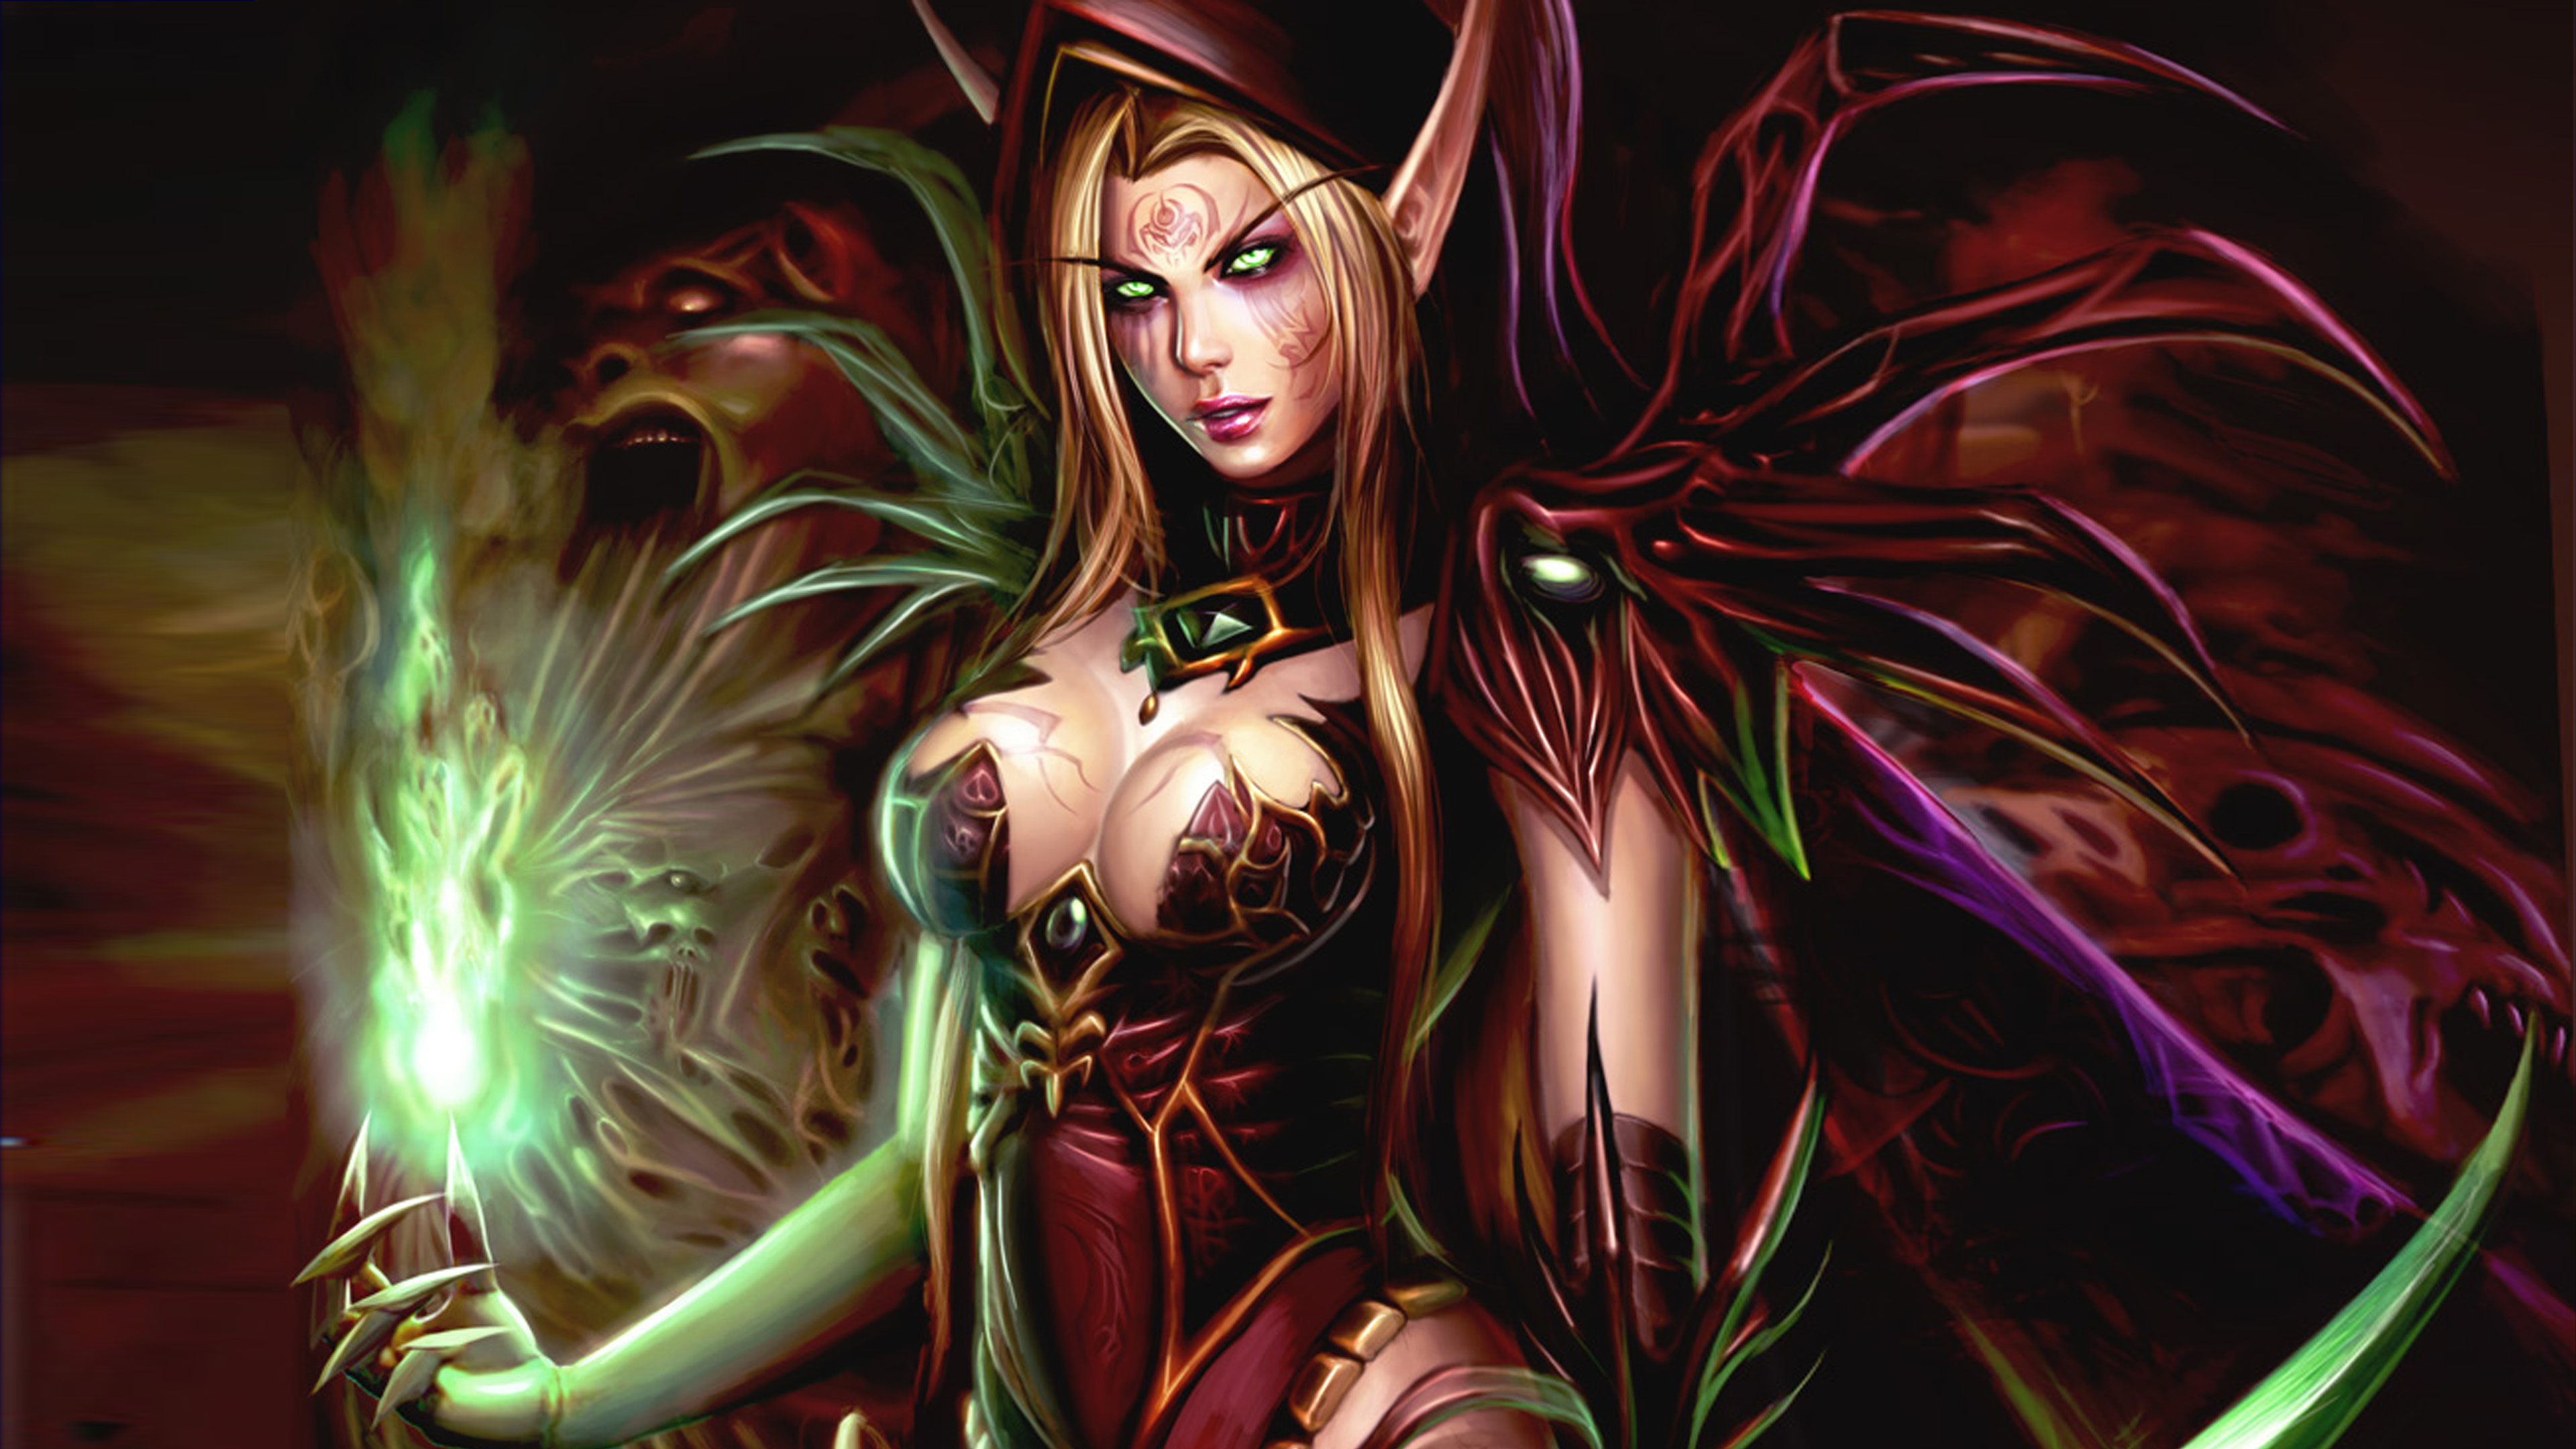 World Of Warcraft Video Game Female Characters Valeera Sanguinar Magic Fighter Fantasy Art HD